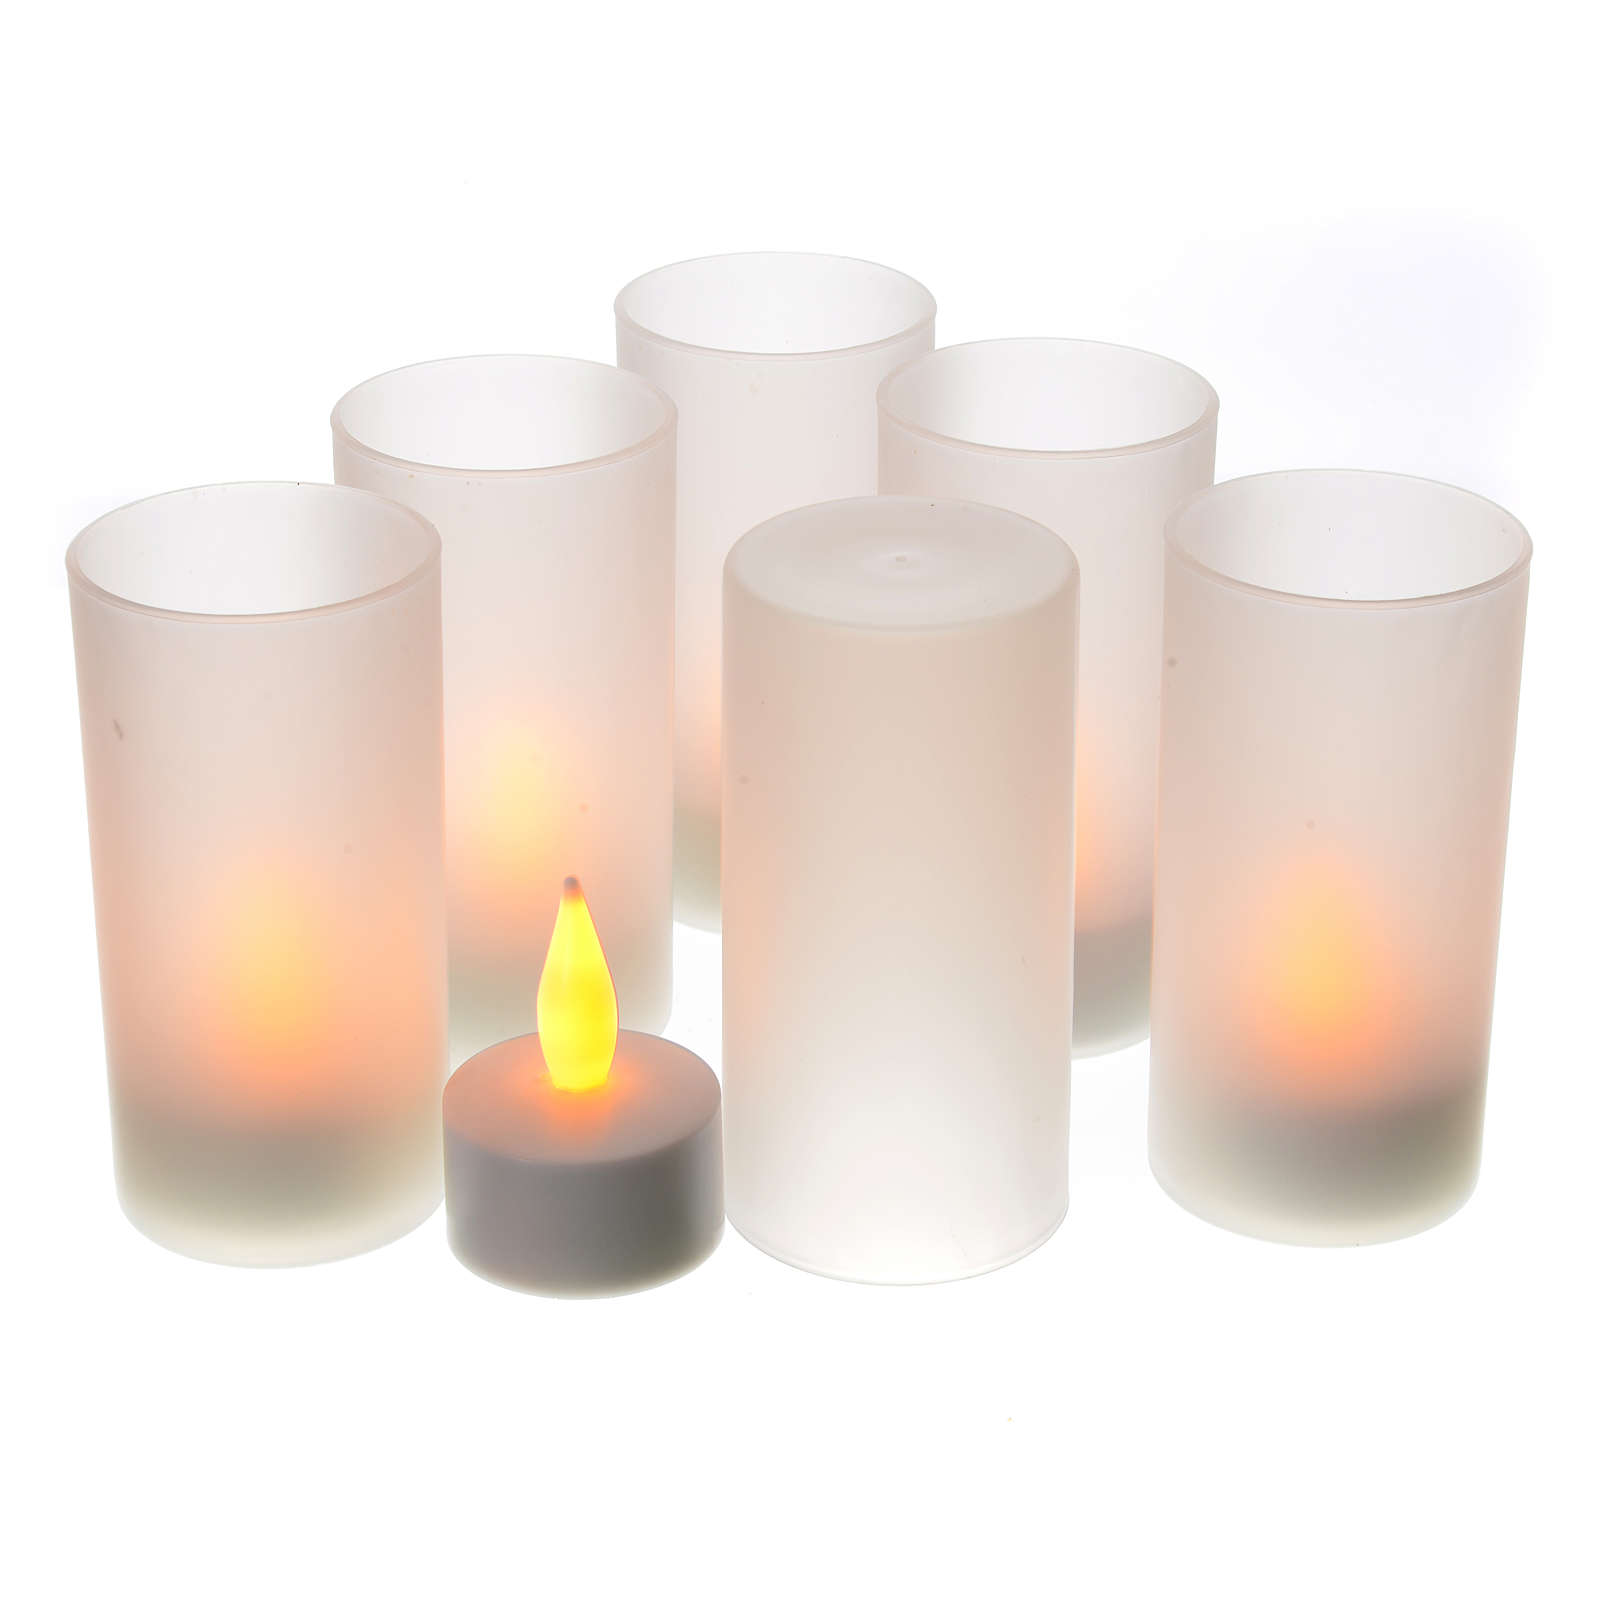 Tea light votive candles, rechargeable LED light, 6 pcs 3